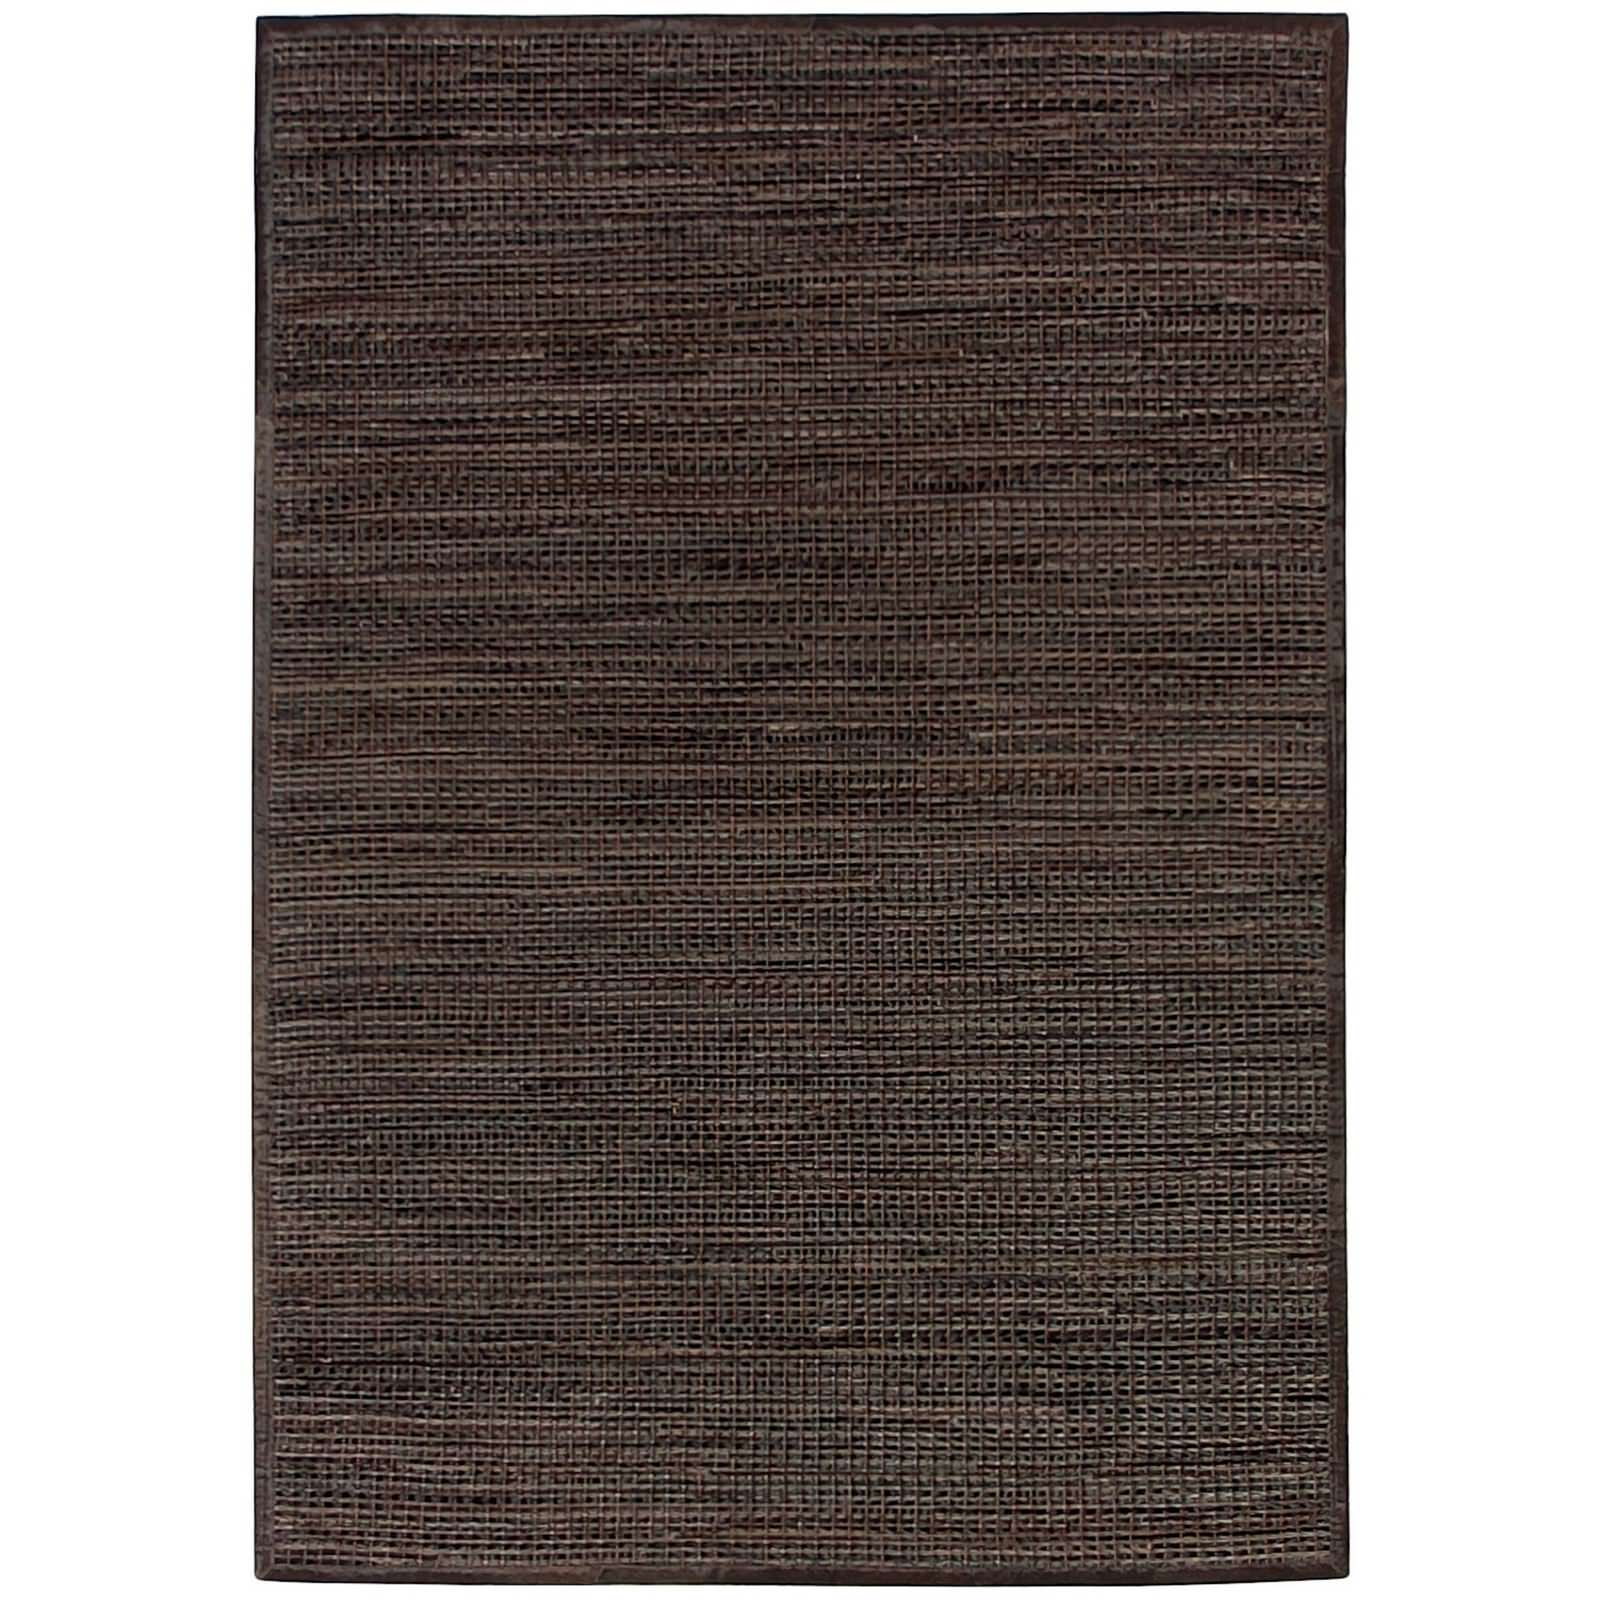 Chase Handwoven Hide & Leather Rug, 300x400cm, Cocoa